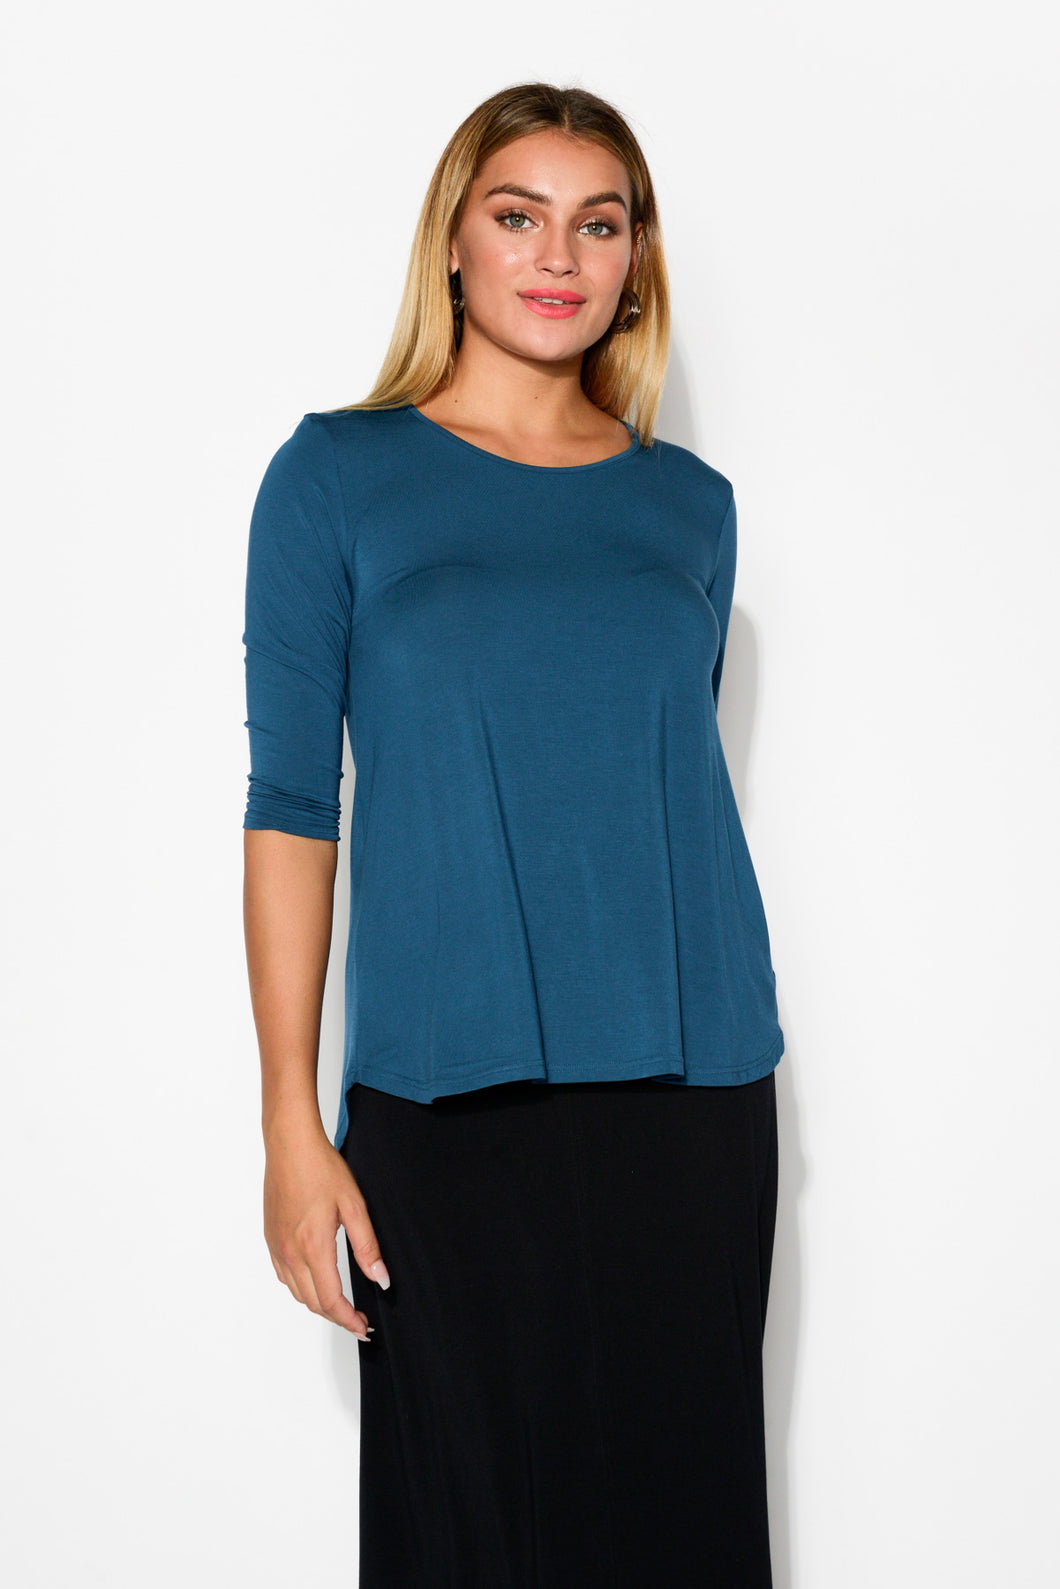 Blue 3/4 Sleeve Modal Hi Lo Top - Blue Bungalow